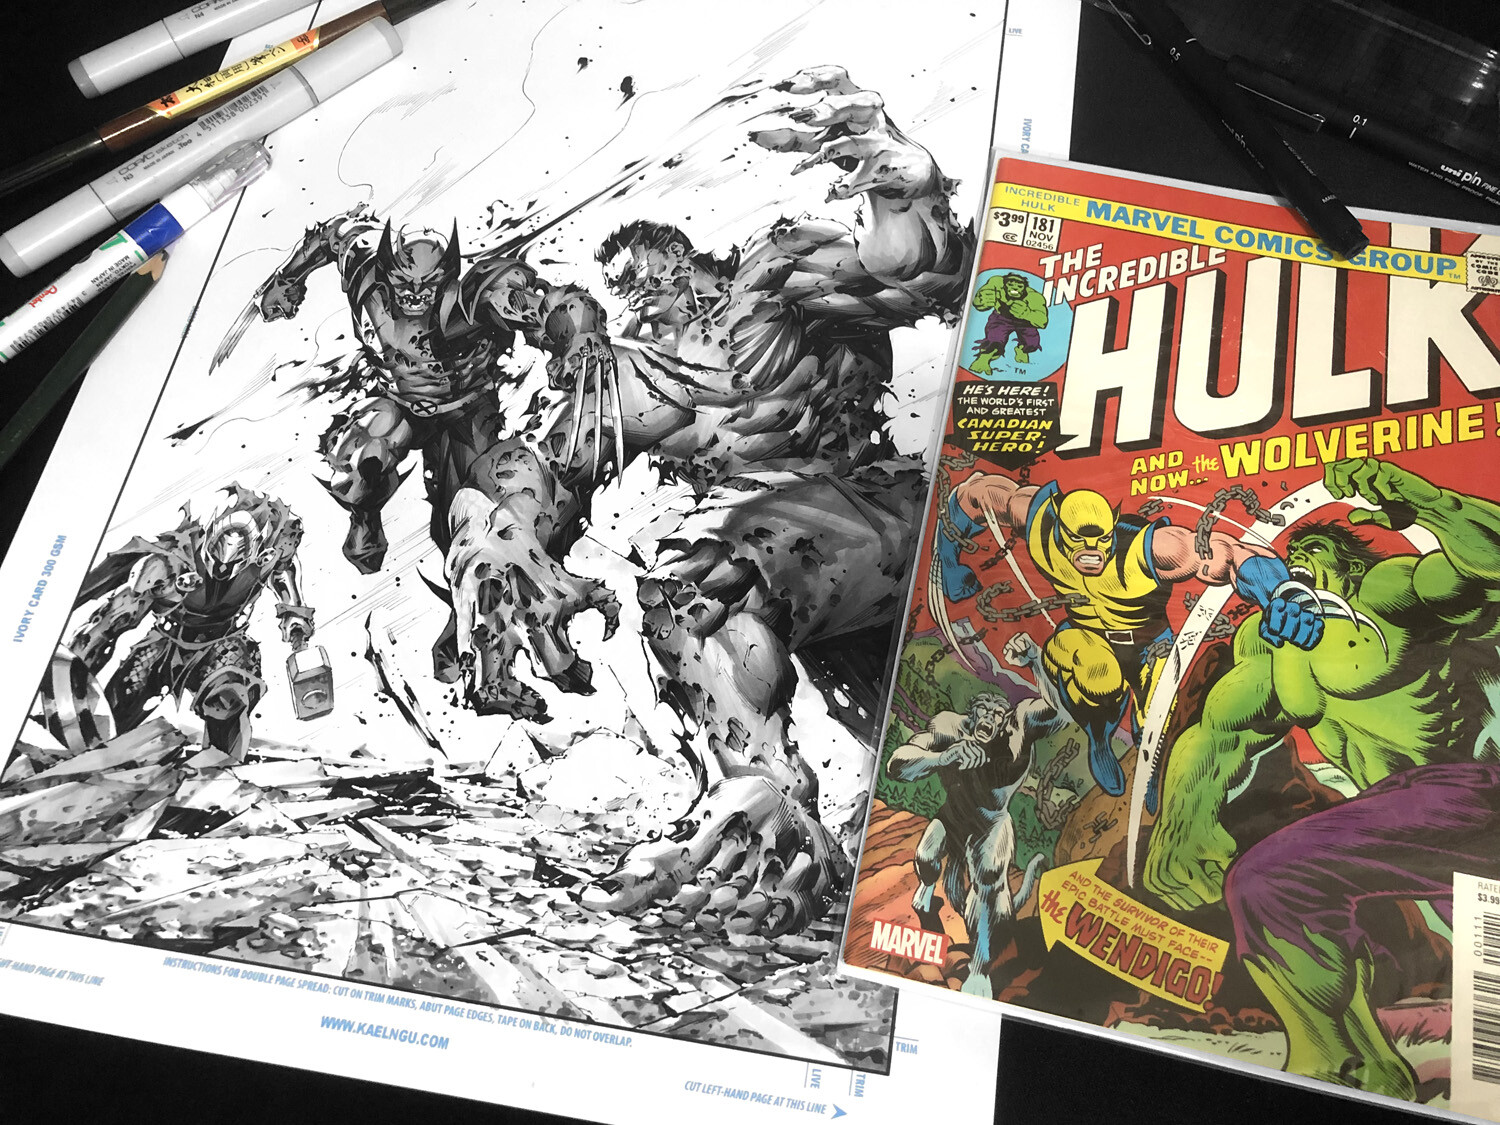 Homage after Incredible Hulk #181